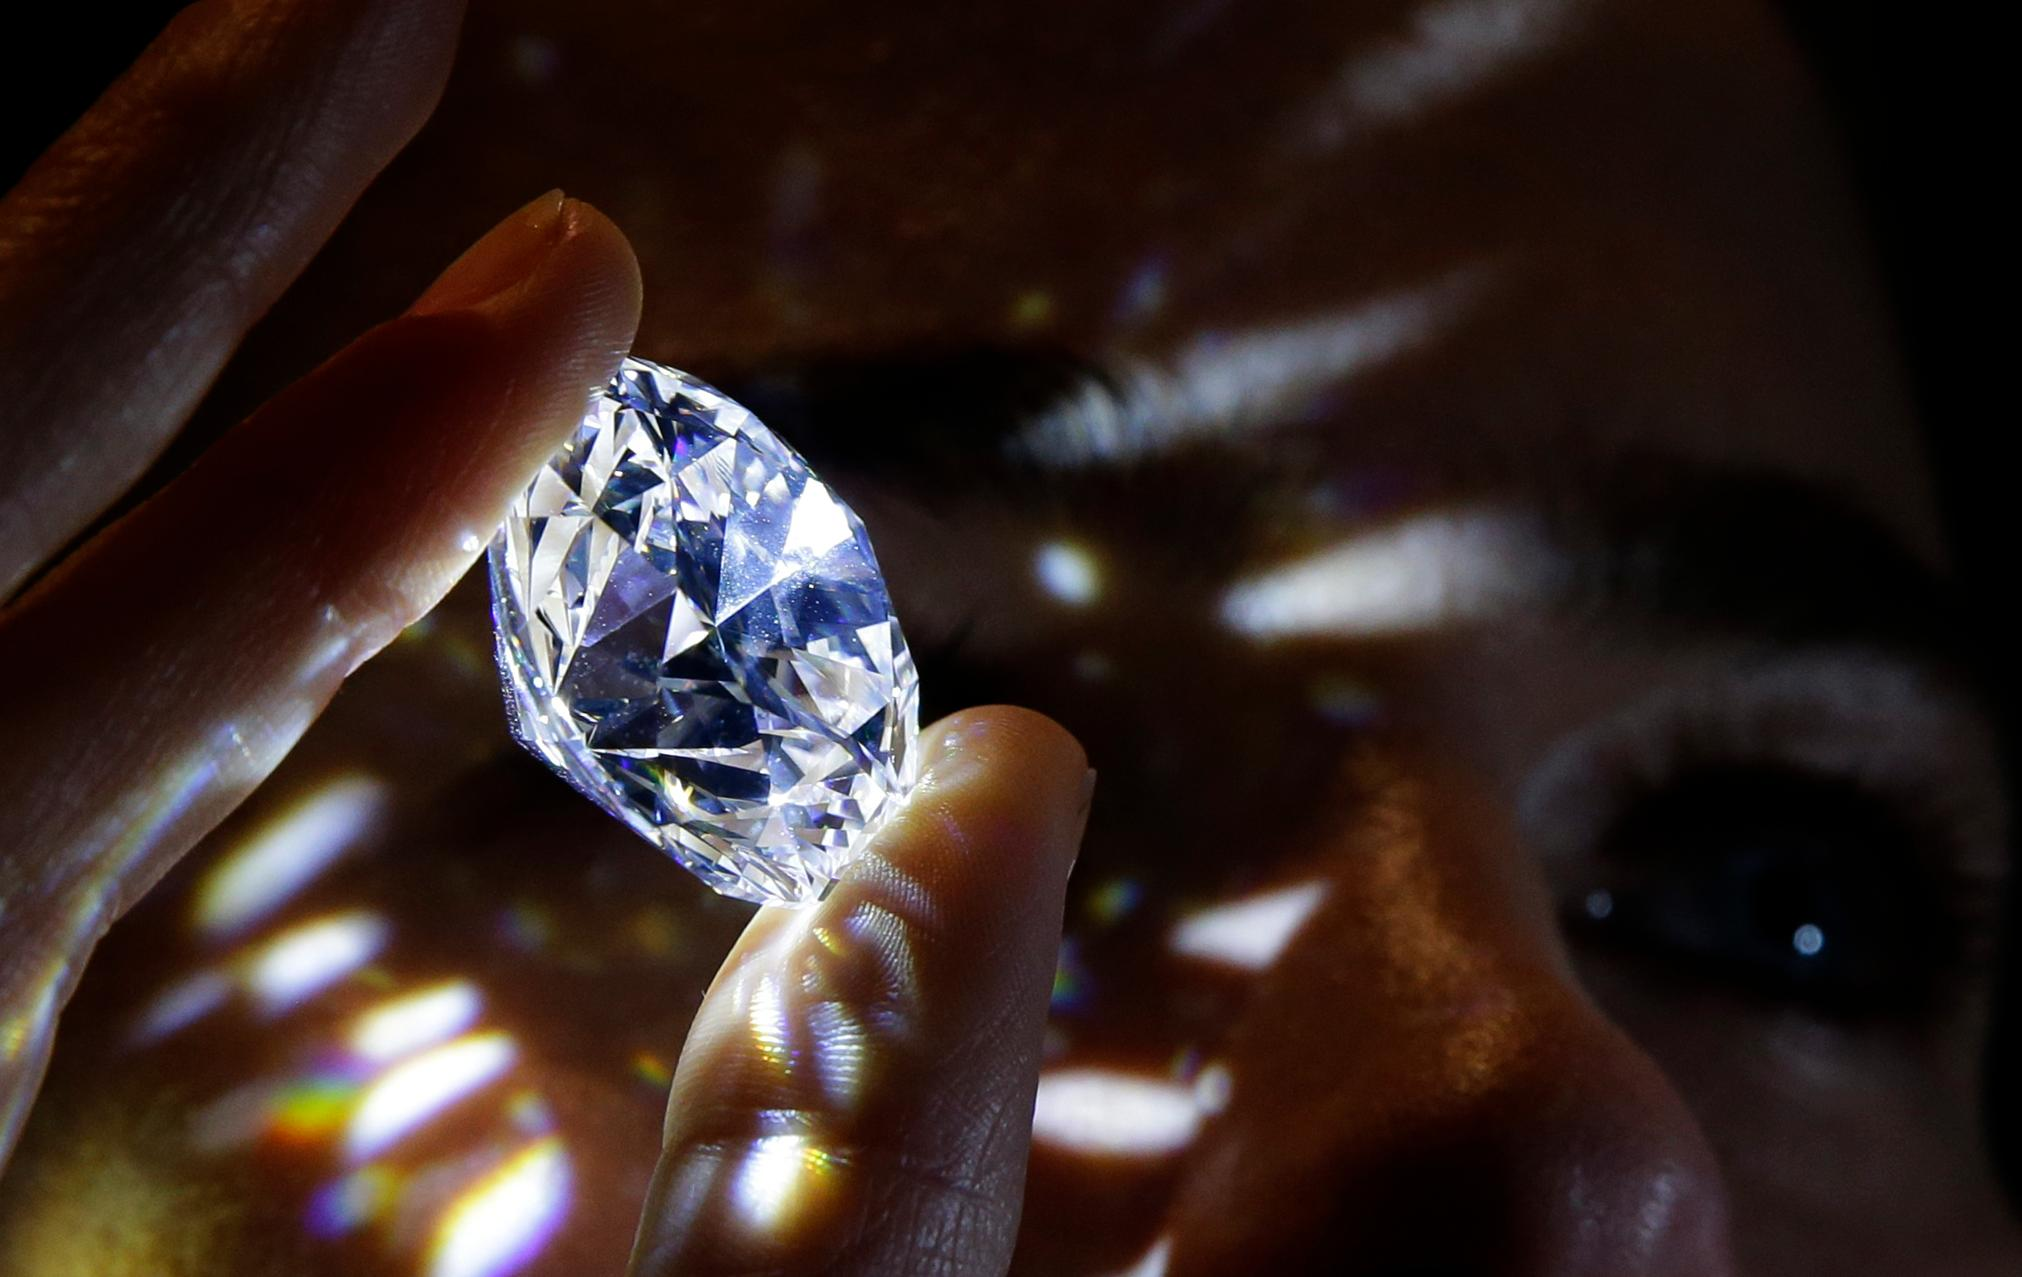 "A 102.34, carat, D colour and flawless white diamond held by a model is displayed at Sotheby's auction house in London, Thursday, Feb. 8, 2018. The diamond is the world largest known round brilliant diamond to have achieved ""perfection in all critical criteria - Colour, Clarity, Cut and Carat"", and is expected to reach considerably over 33.7 million dollars by private sale in London. (AP Photo/Alastair Grant)"